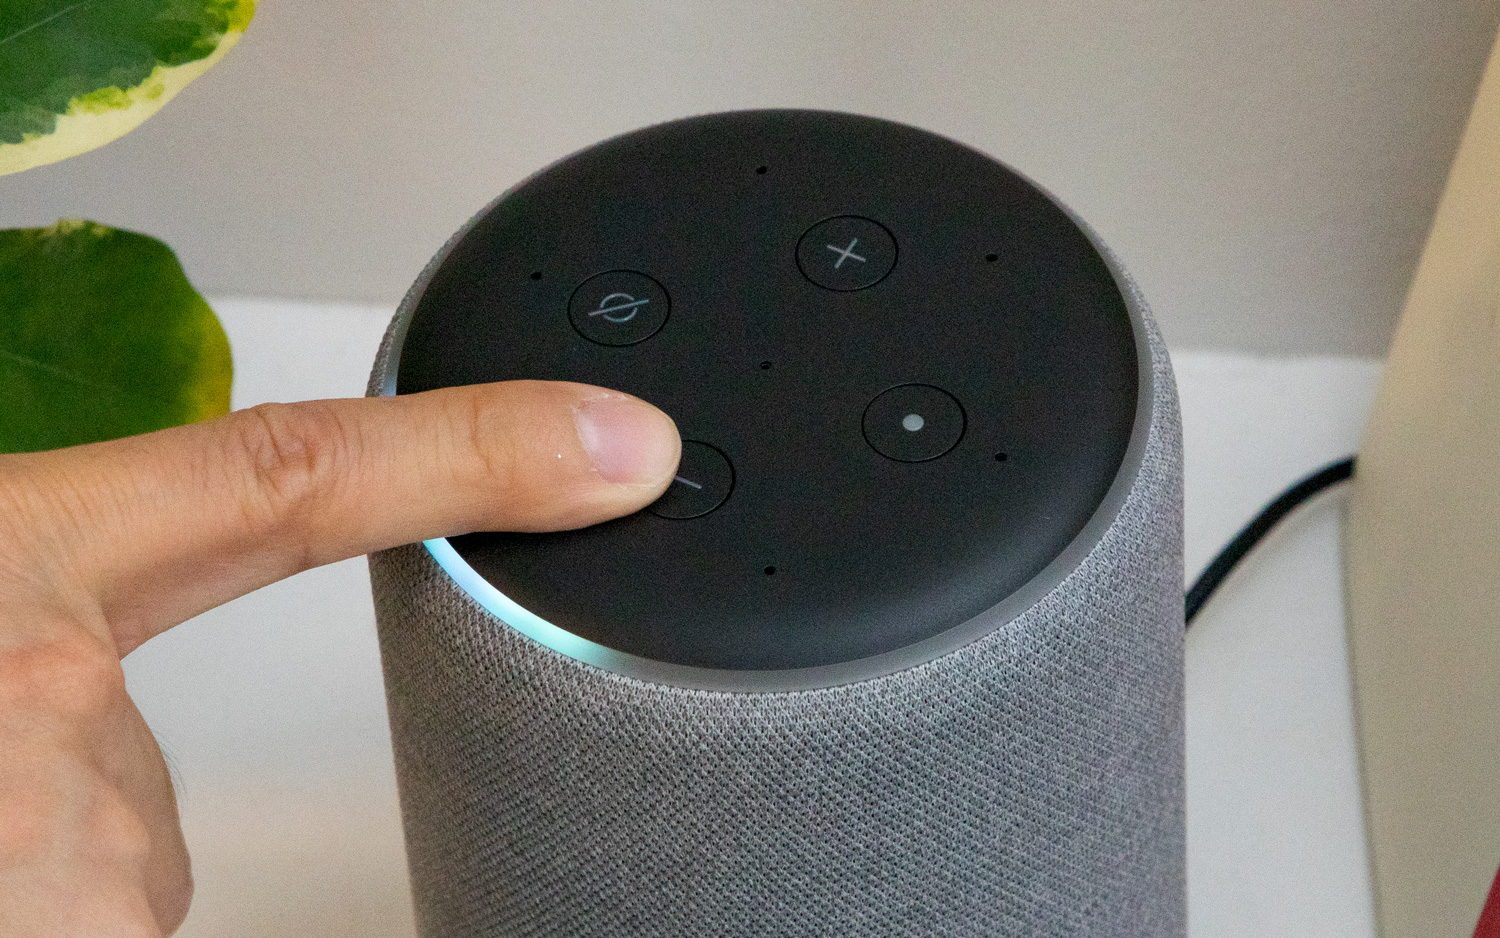 How to play music on alexa for free